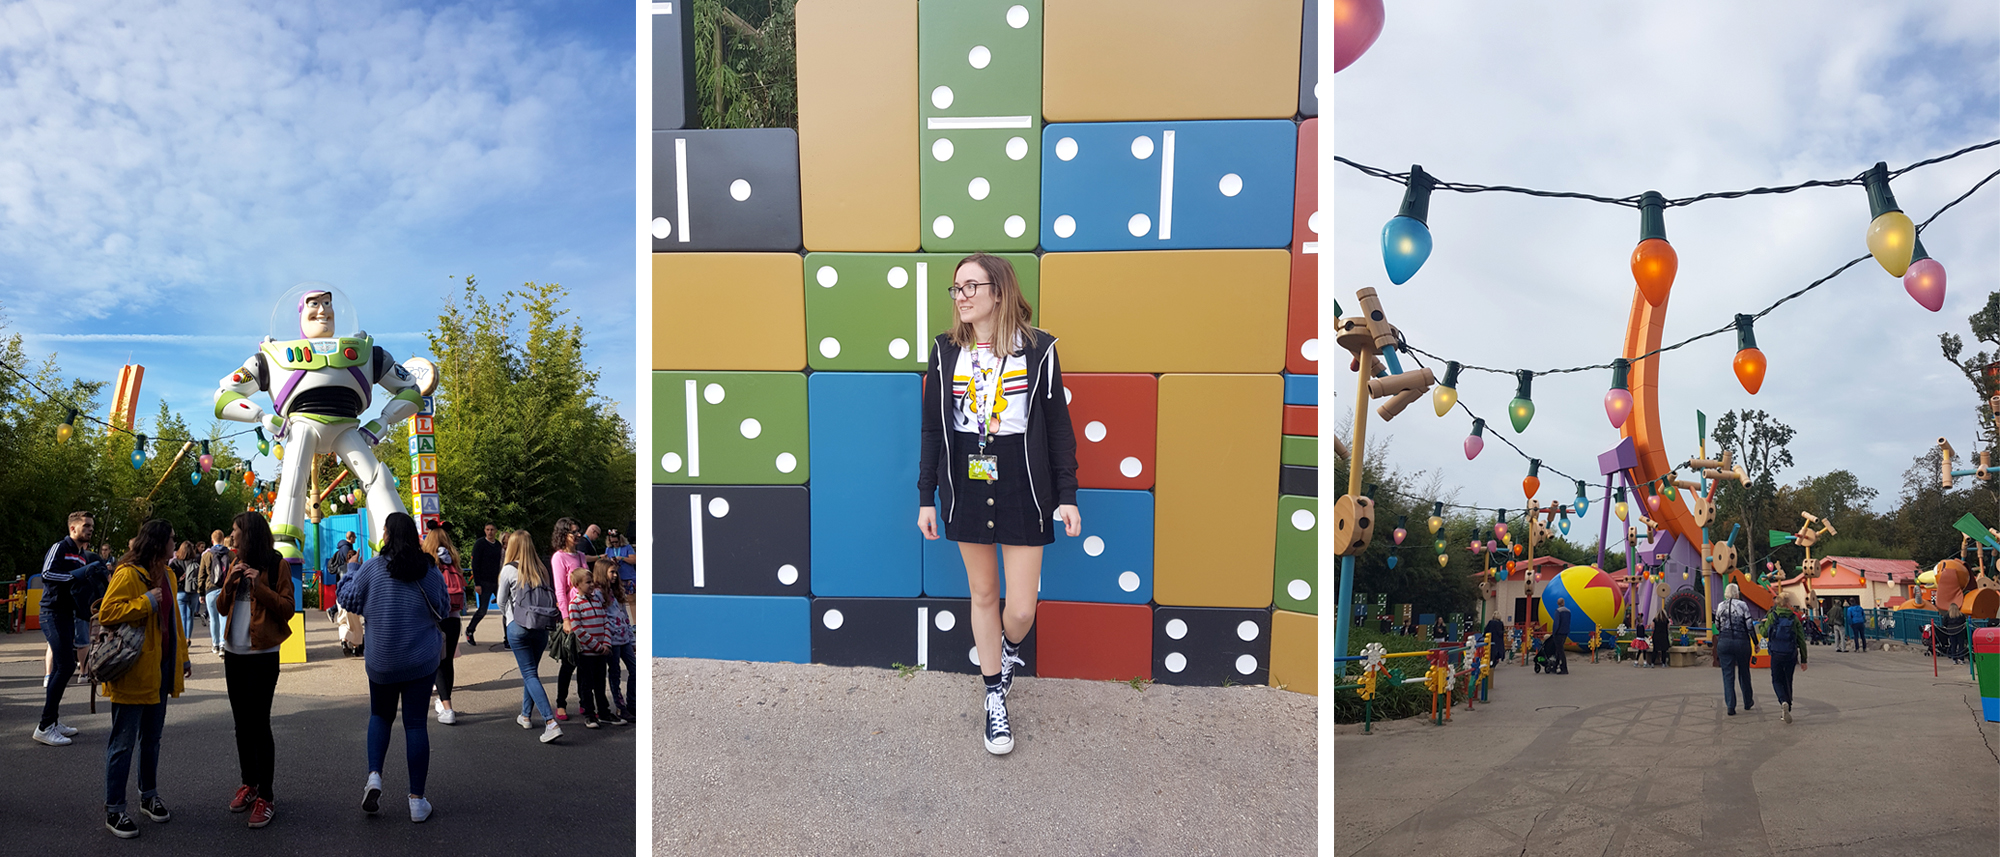 Giant Buzz Lightyear in Toyland and girl posing in front of domino wall  | 9 Tips for Disneyland Paris